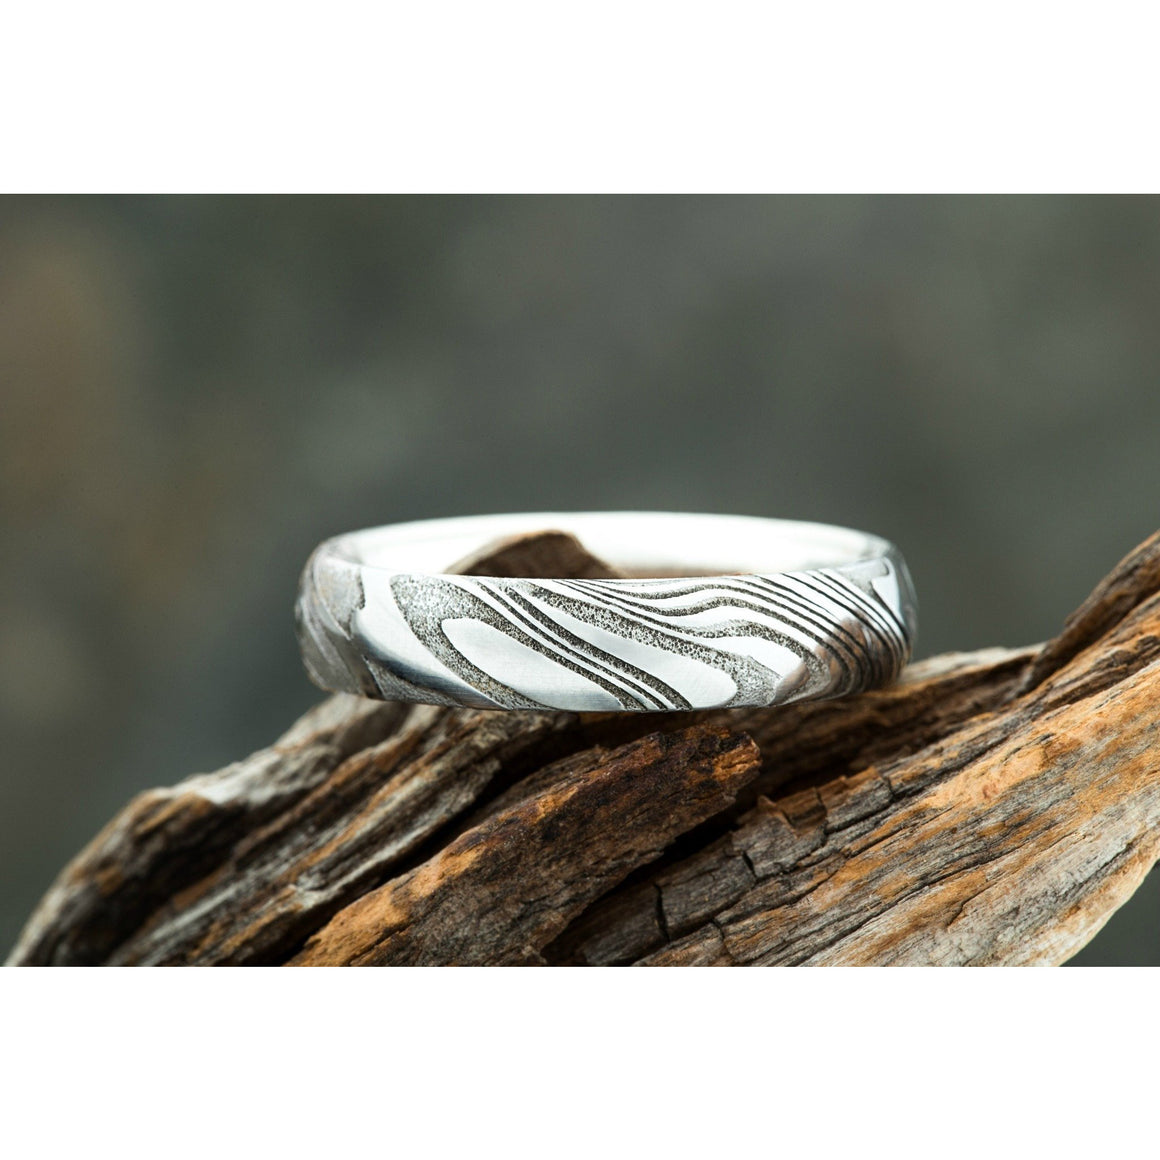 Wood Grain Damascus Steel Ring w/ Silver Interior by Carbon 6 Rings Woodgrain Men's Wedding Band